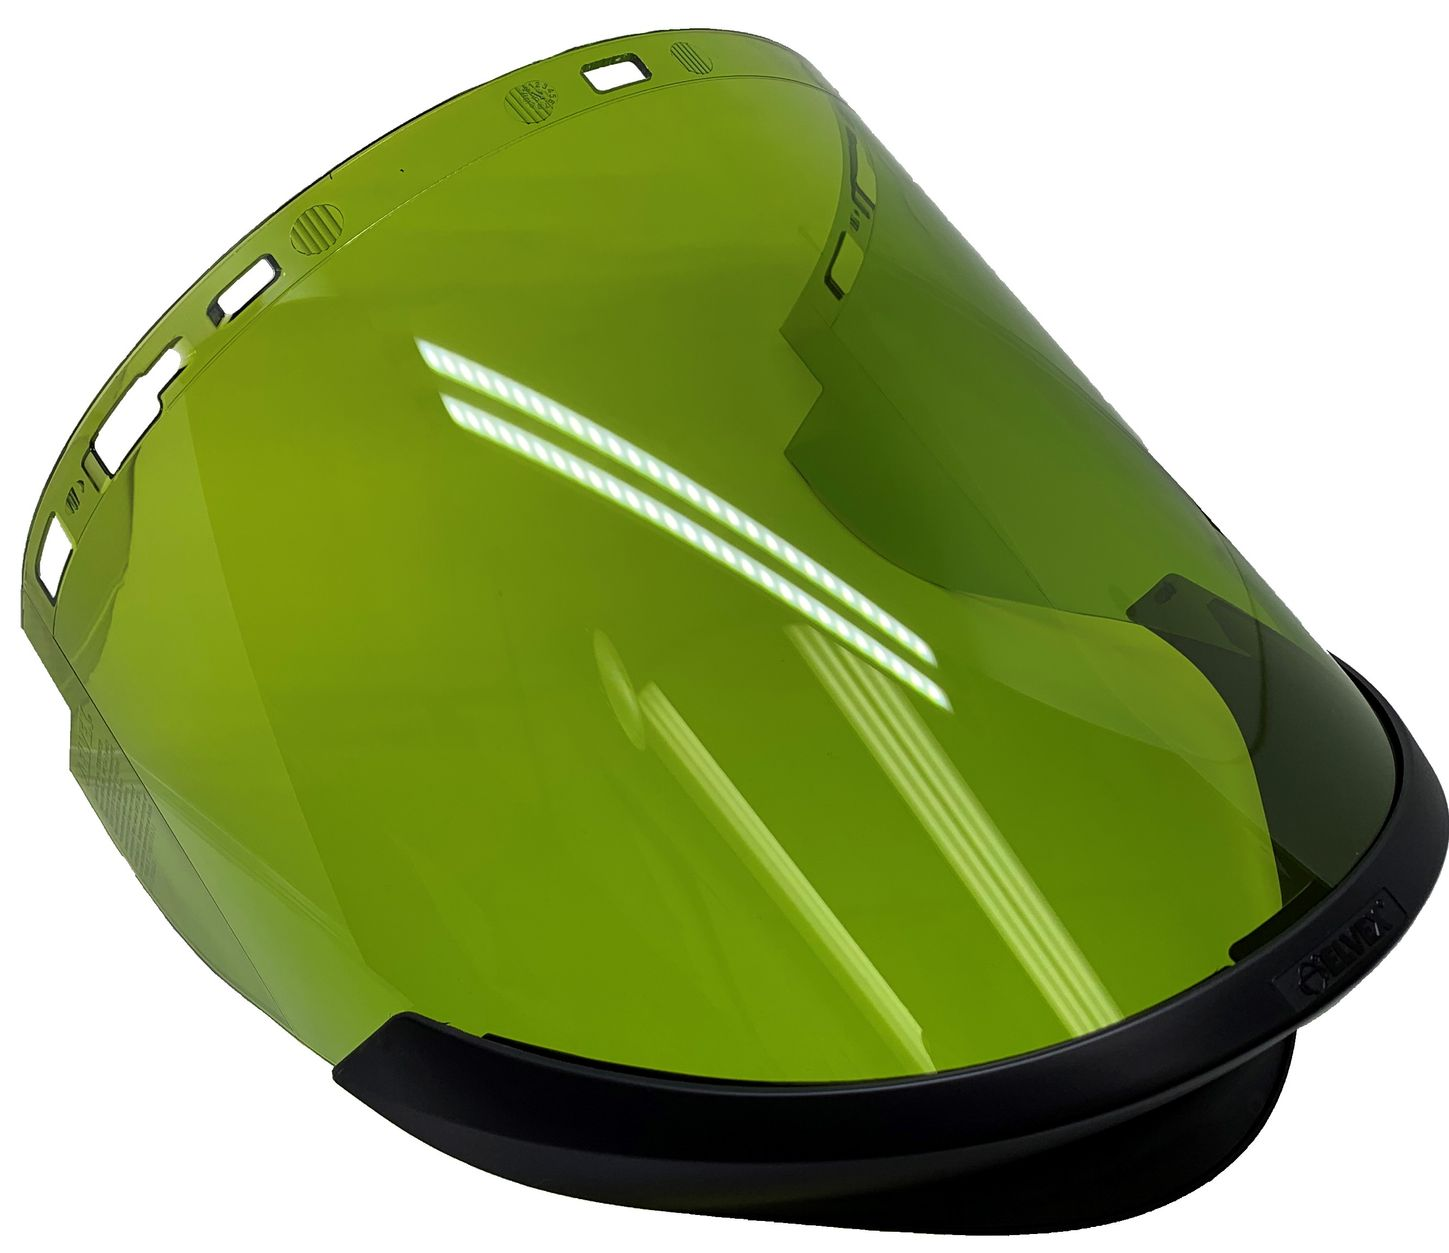 chicago-protective-apparel-replacement-visors-for-face-shields-wv-arc-12-green-right.jpg